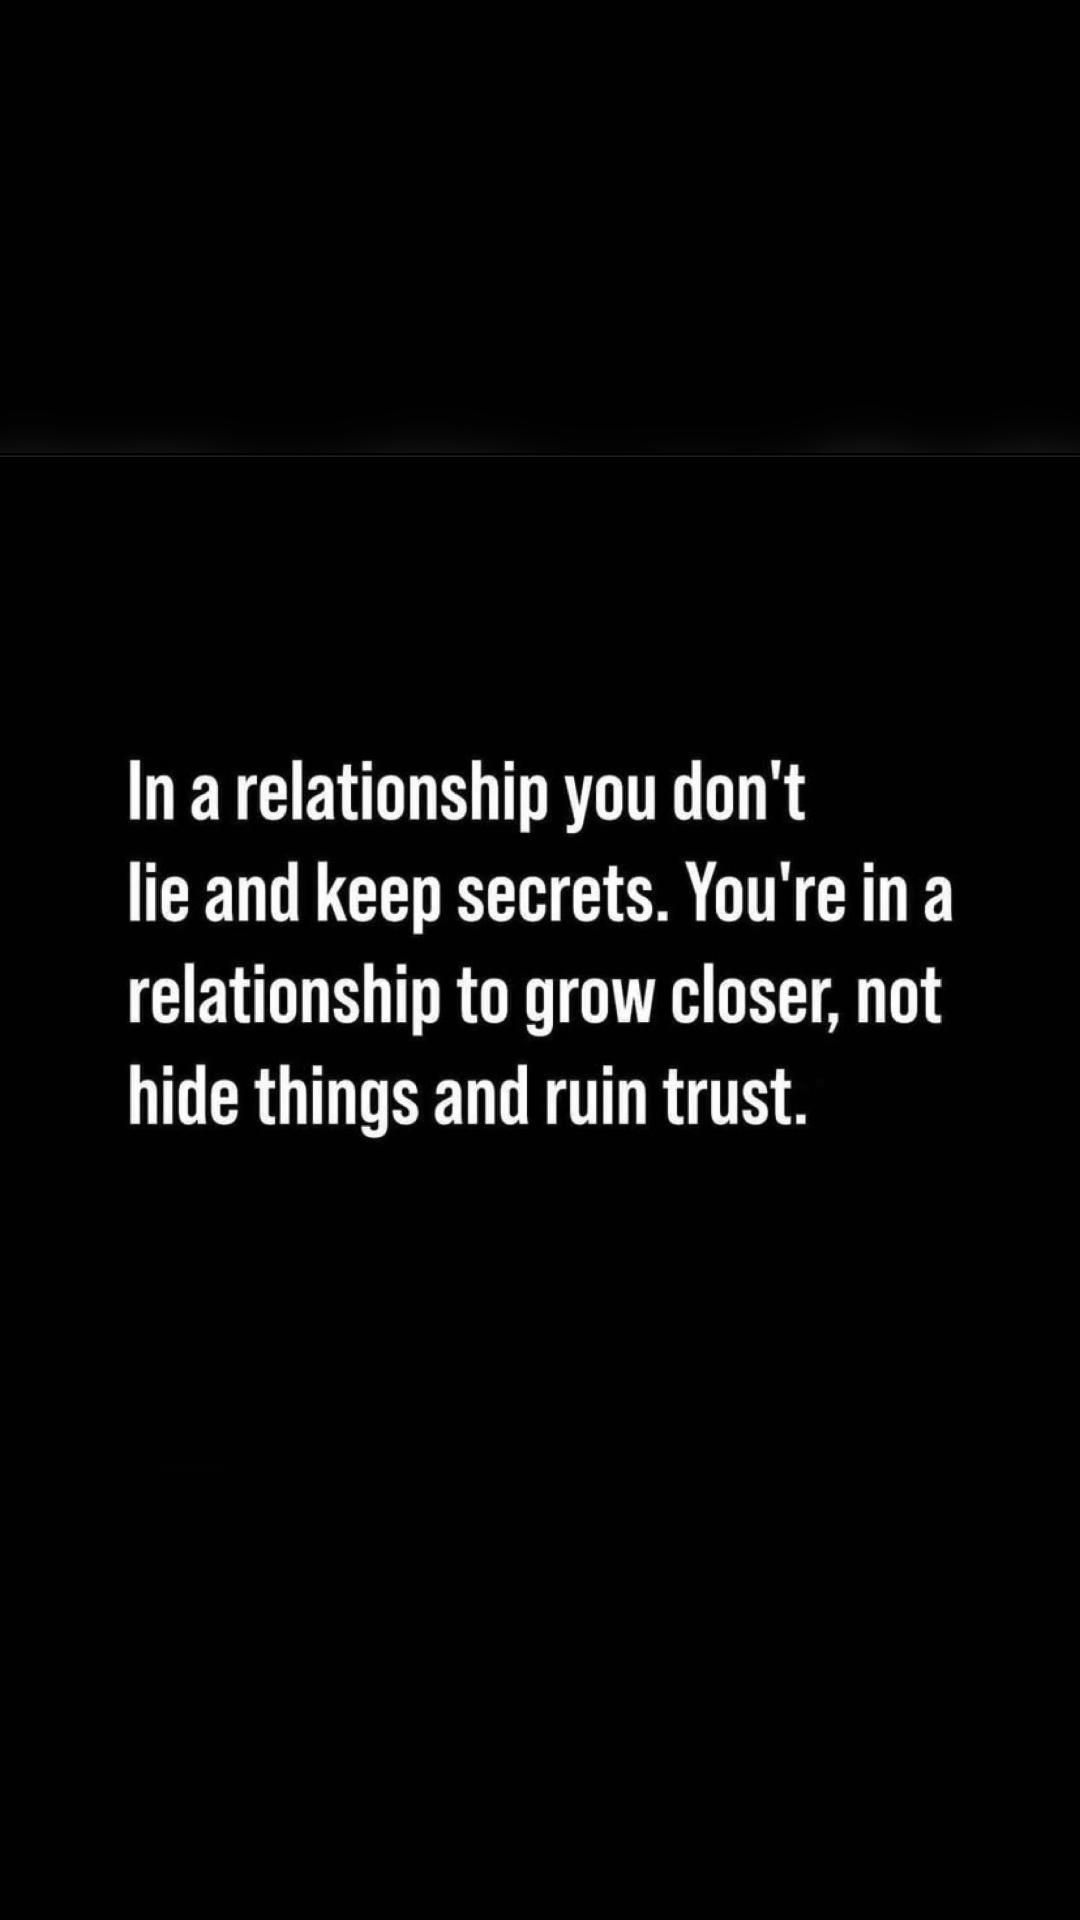 Relationship care